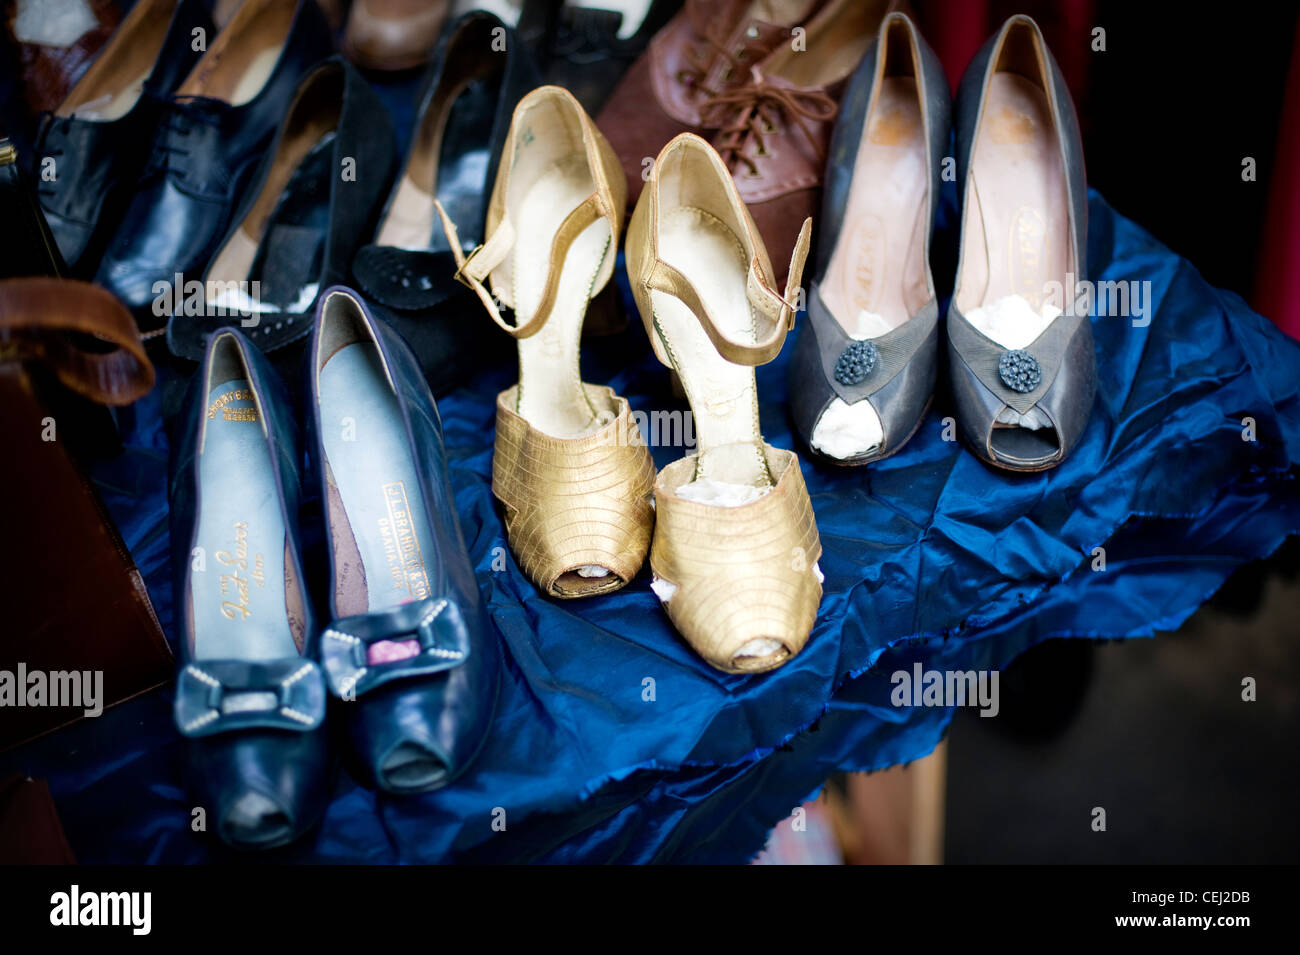 Vintage high heeled shoes, Ardingly antiques fair, West Sussex, England, UK - Stock Image